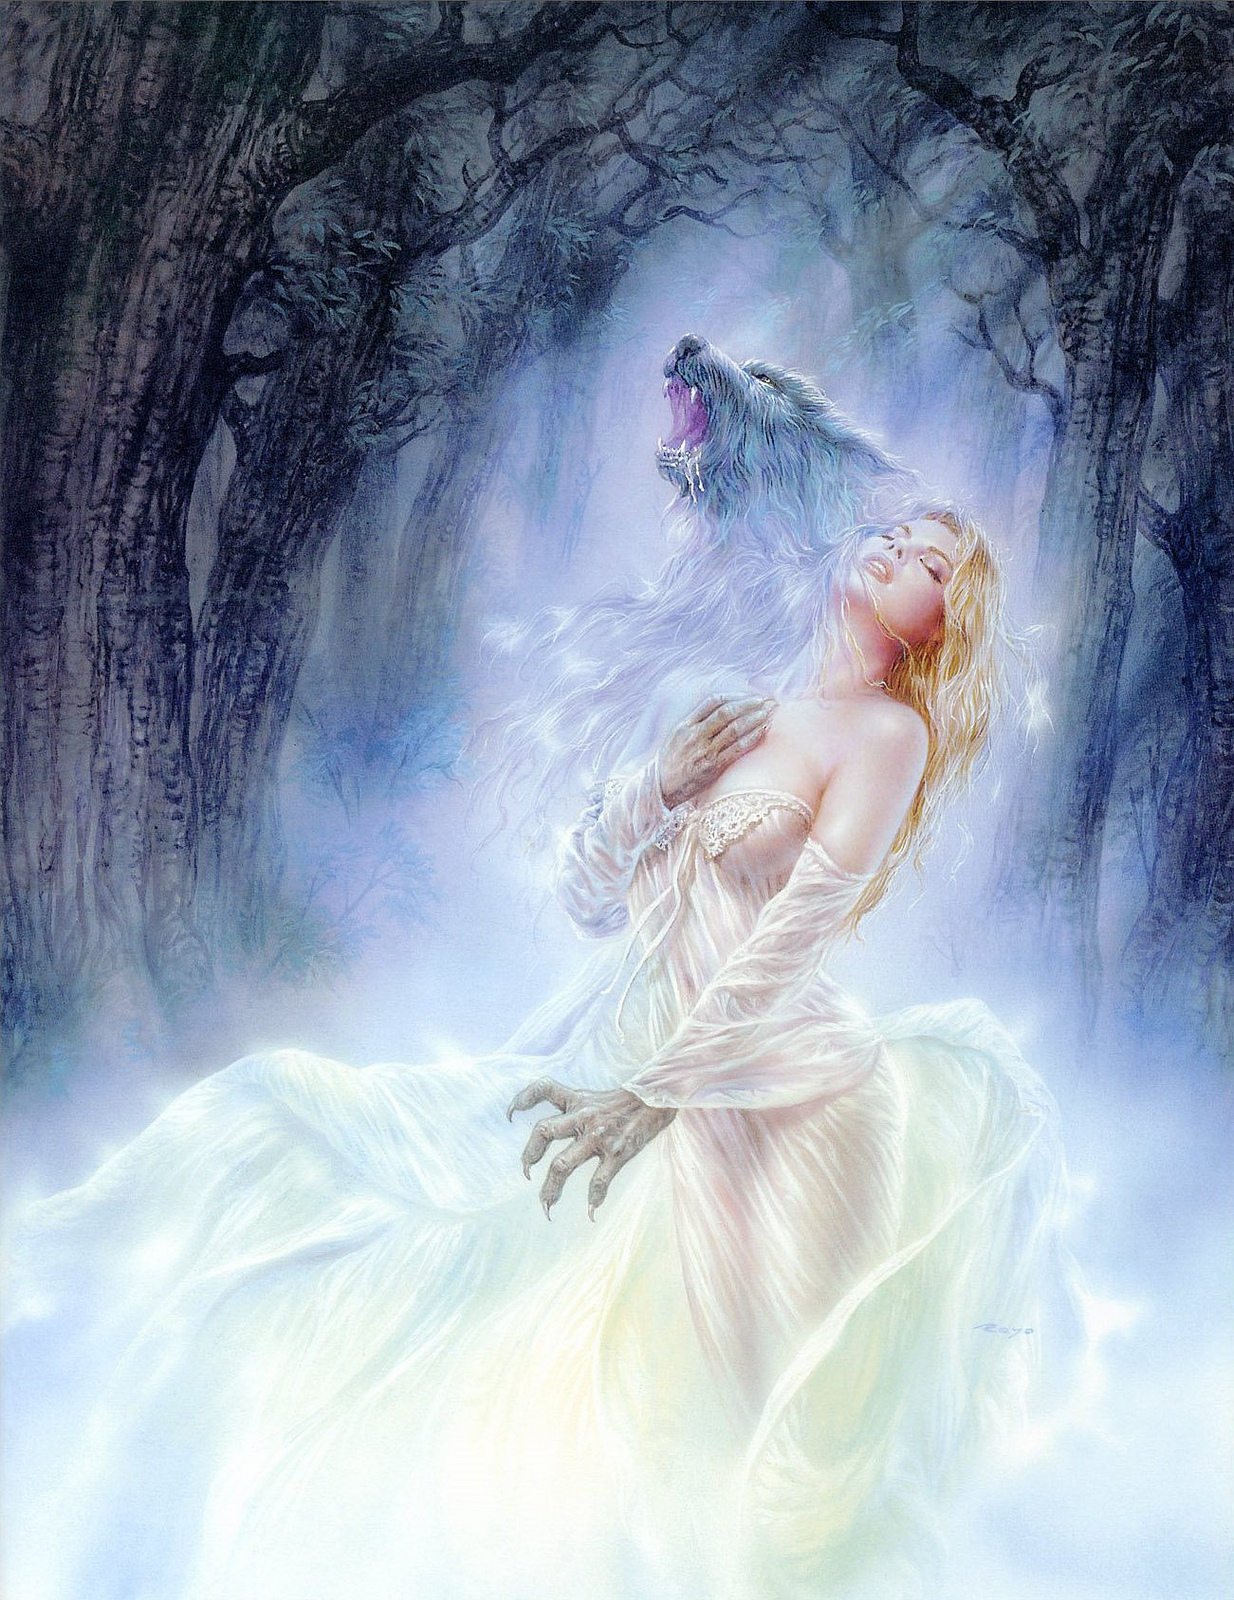 Luis Royo - The Enchantment